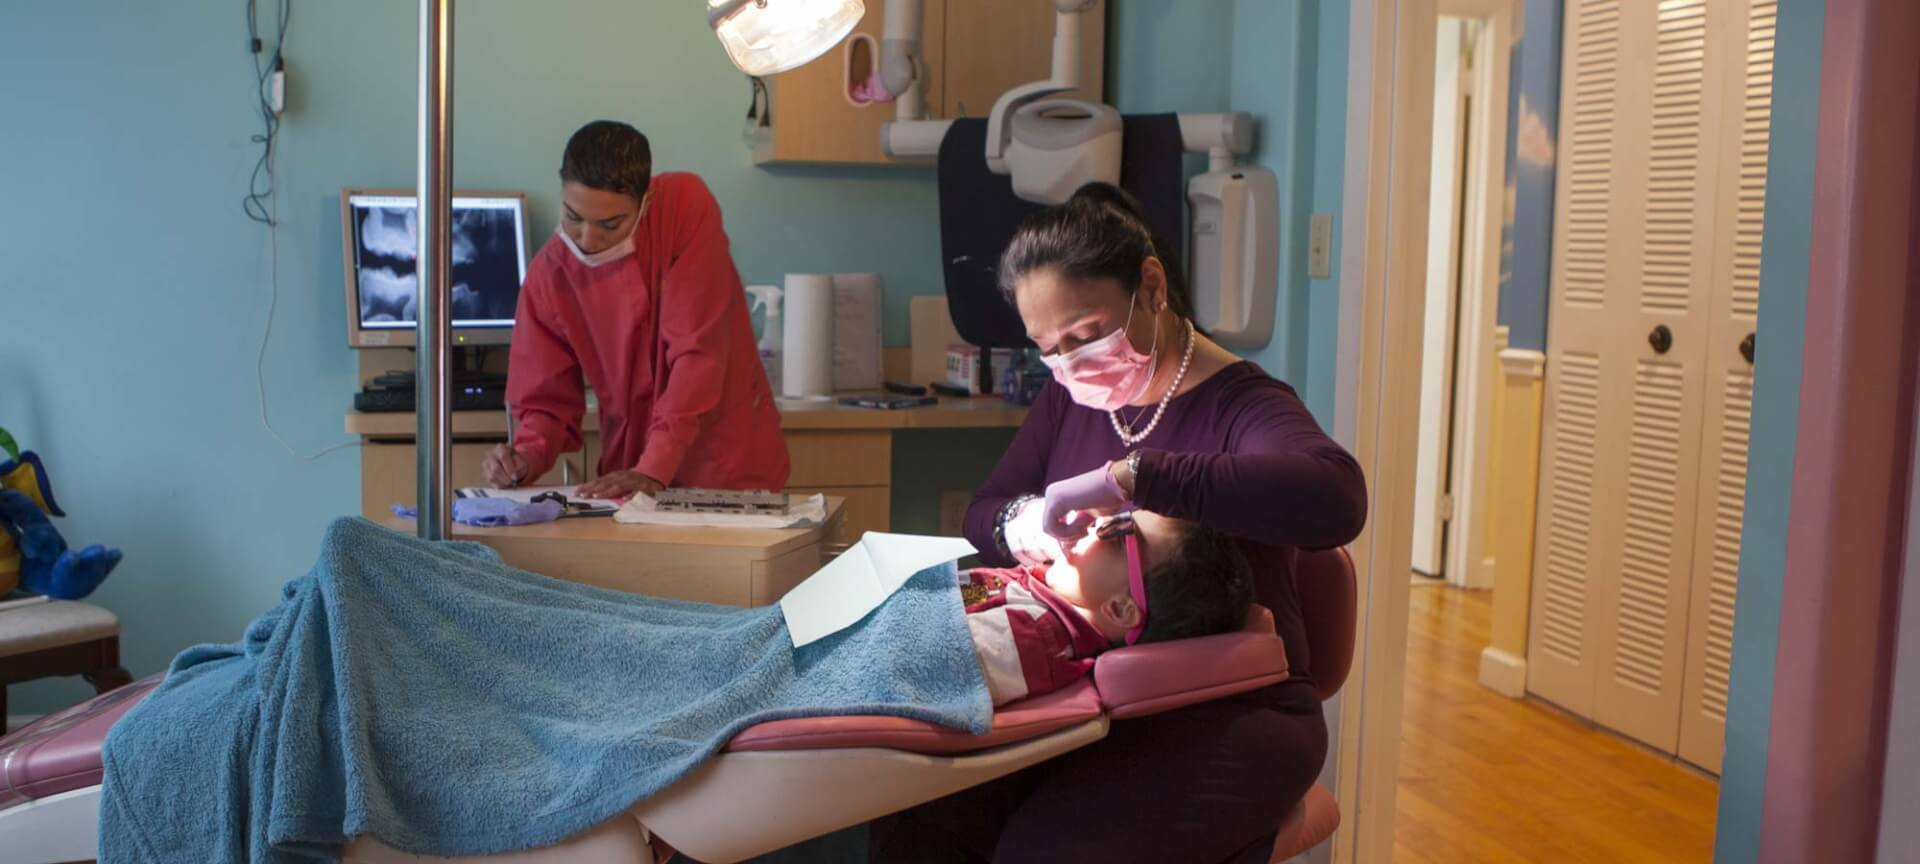 Where can I find pediatric laser dentistry in boca raton?